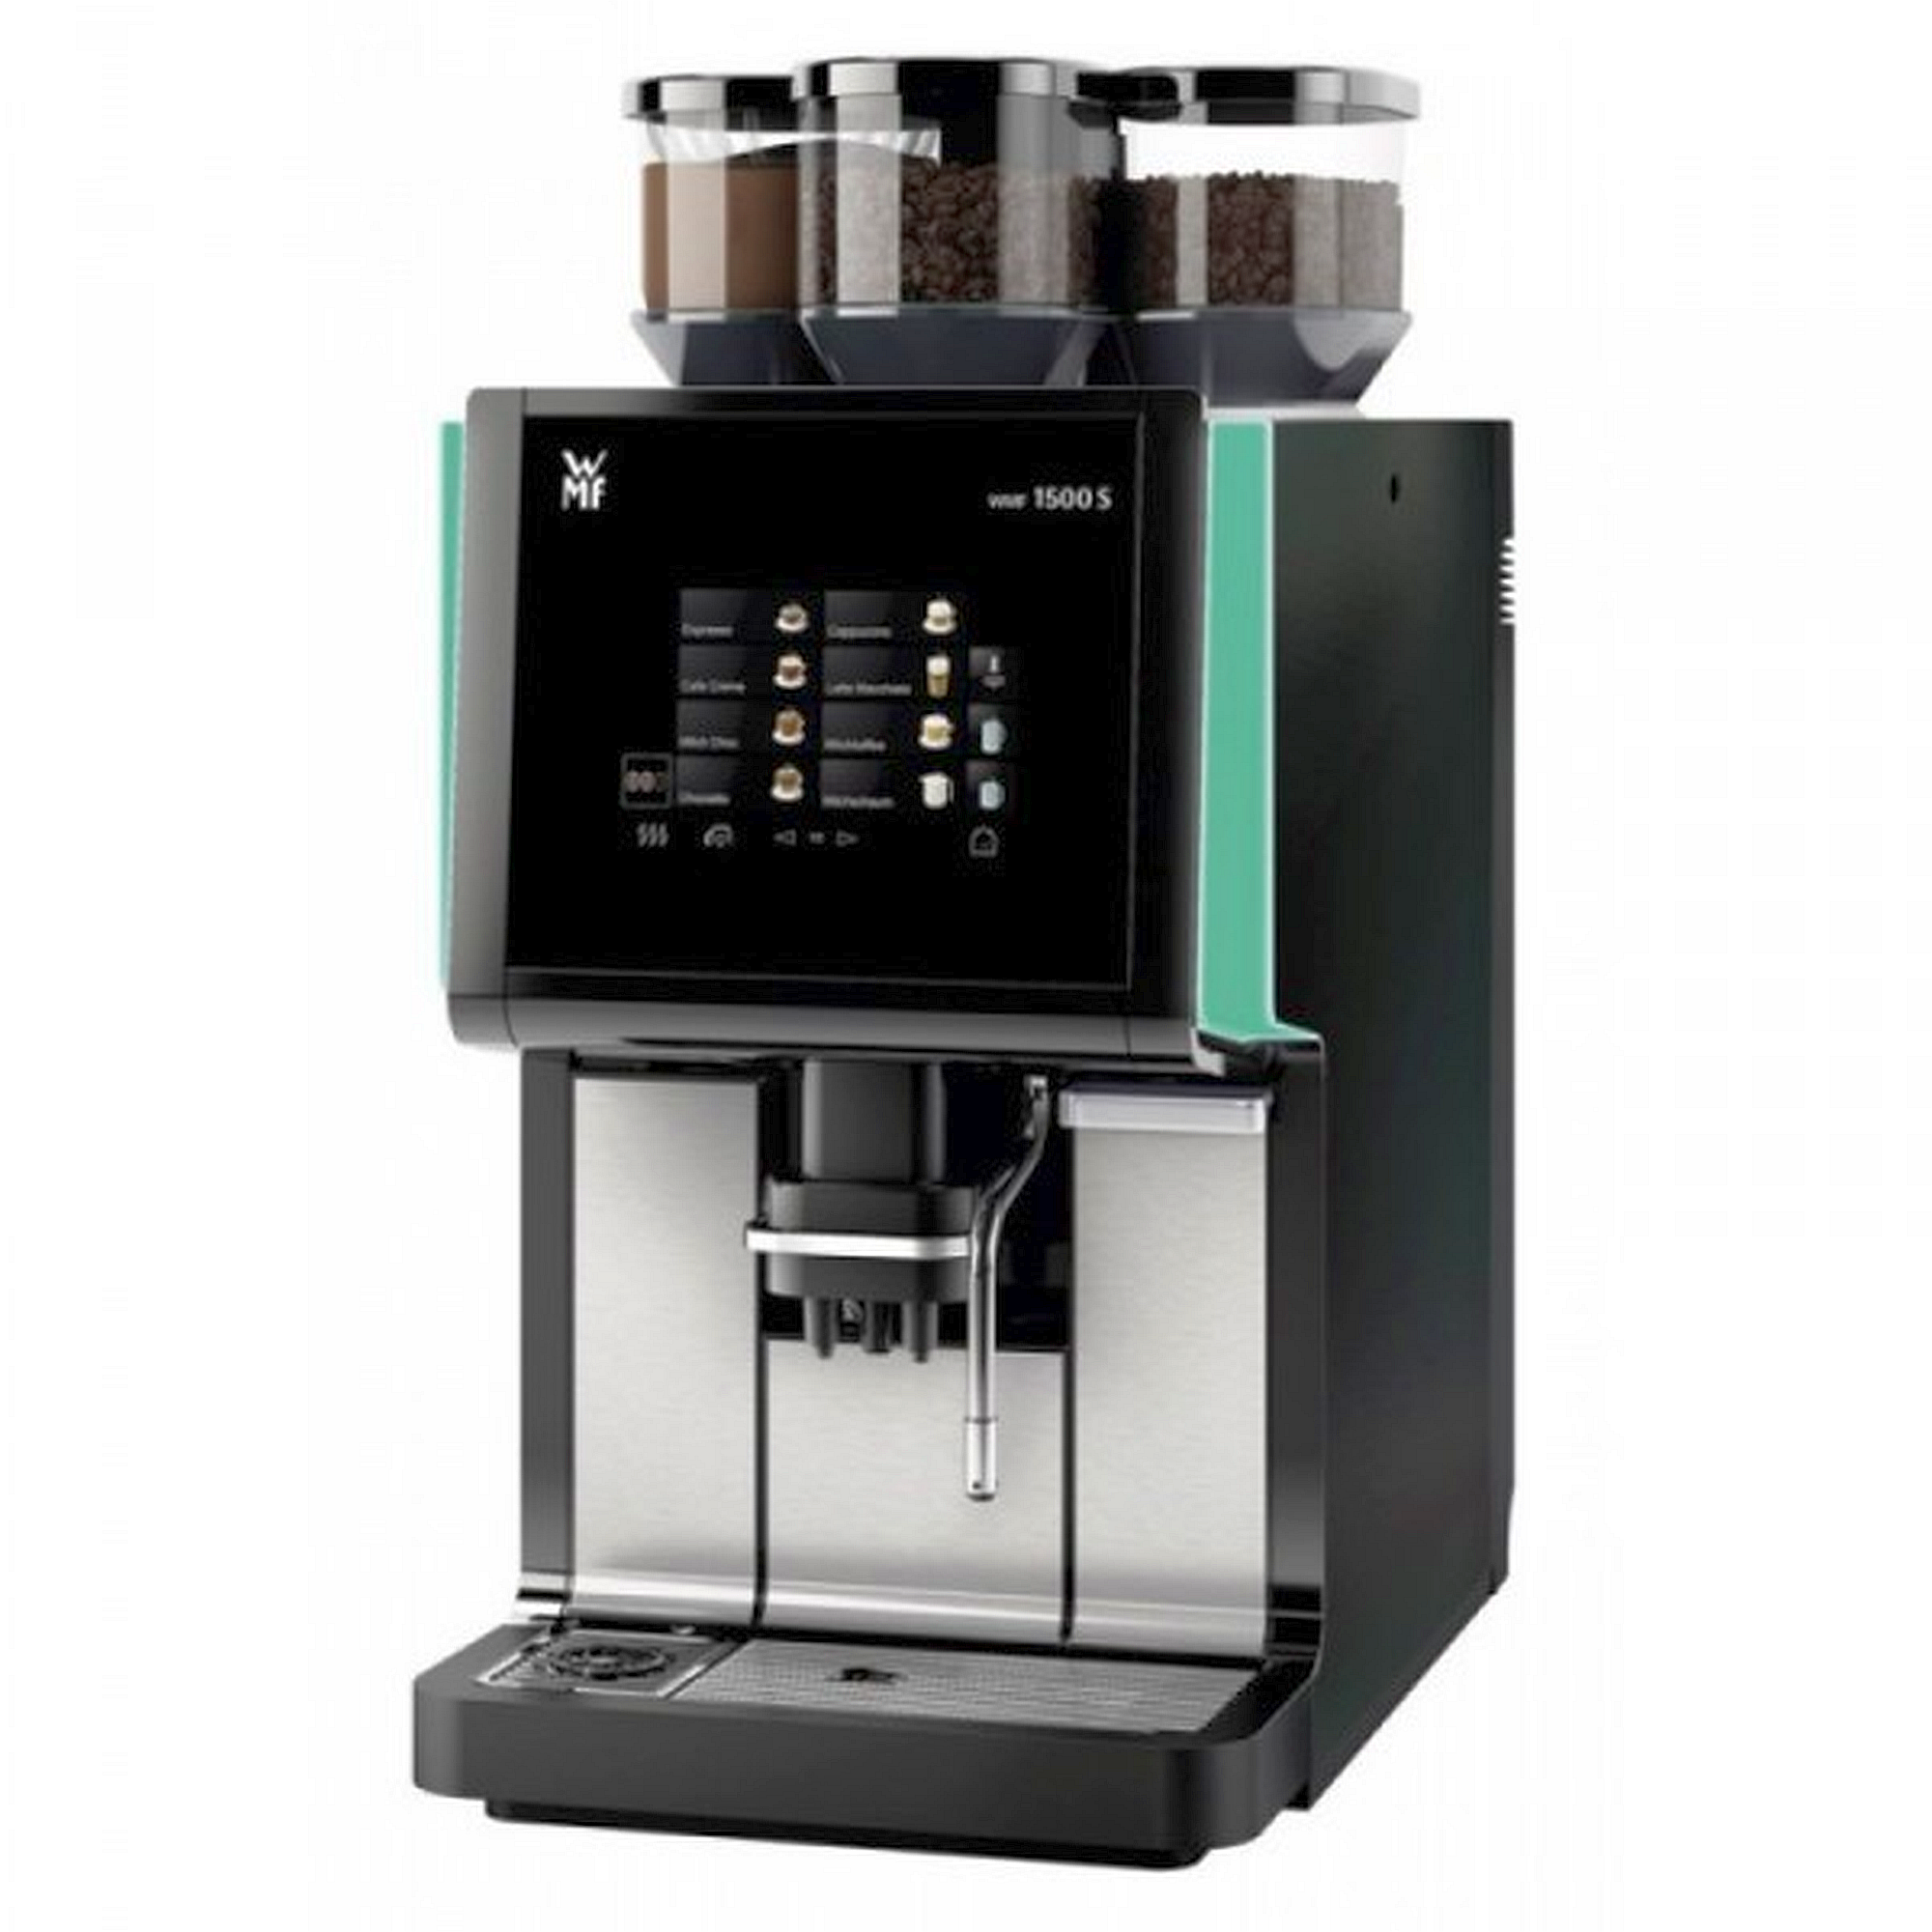 WMF 1500S+ Coffee Machine